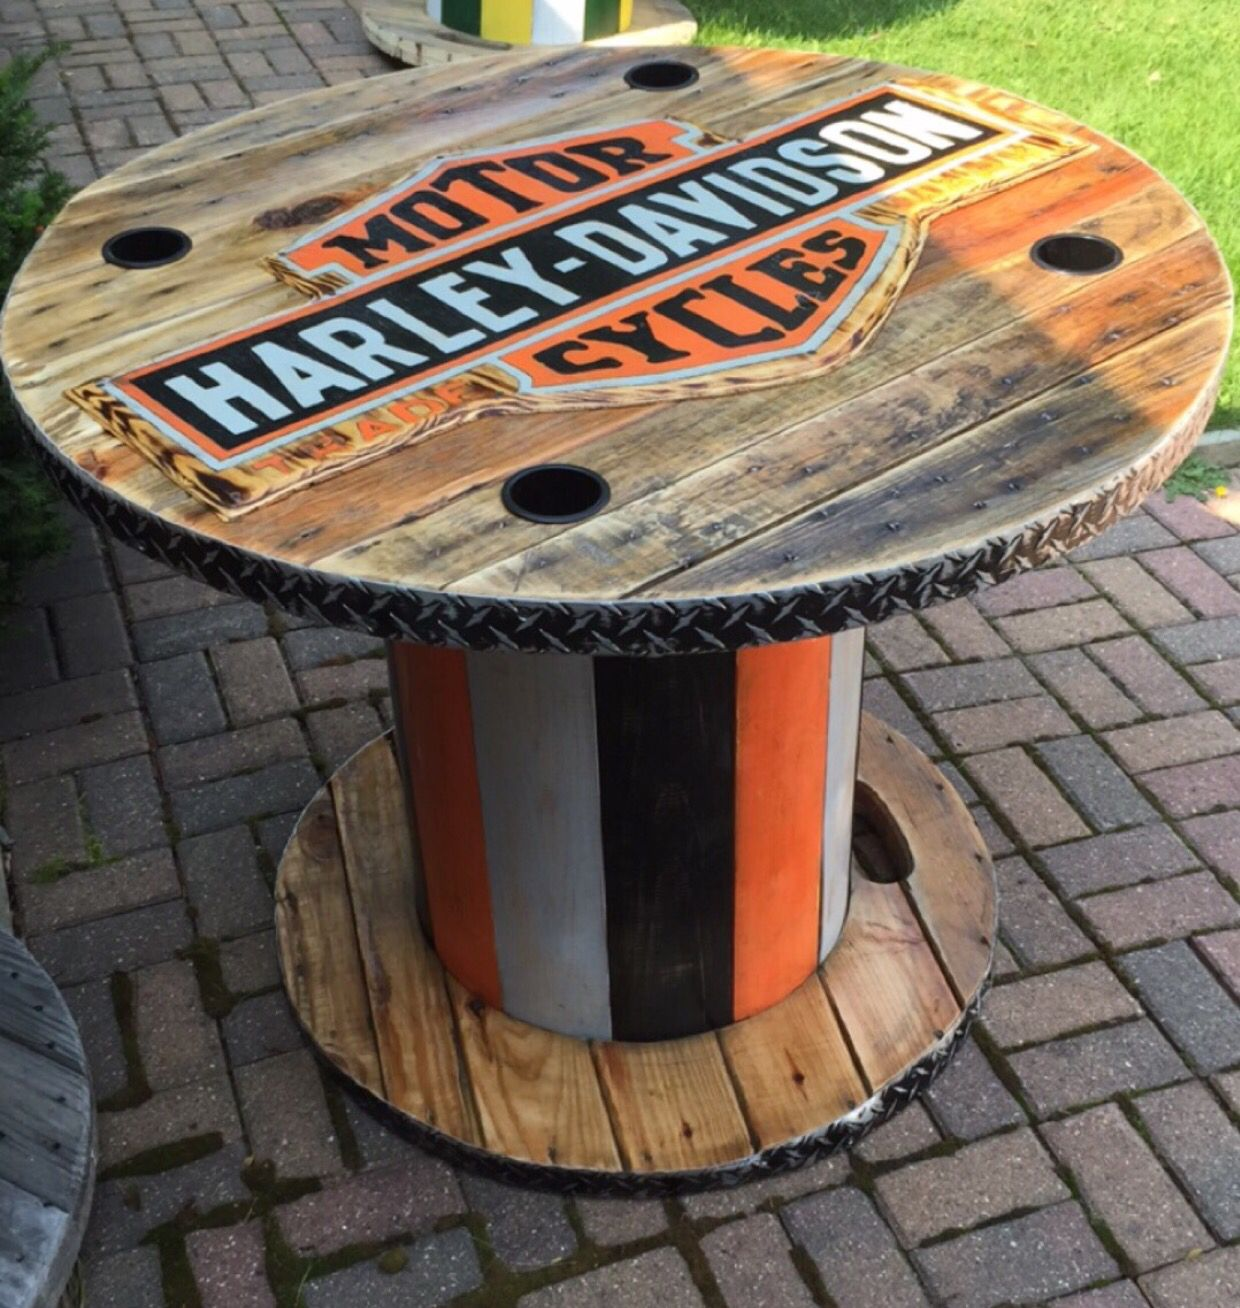 Wooden Spool Harley Davidson Table … | dyi | Pinterest ...